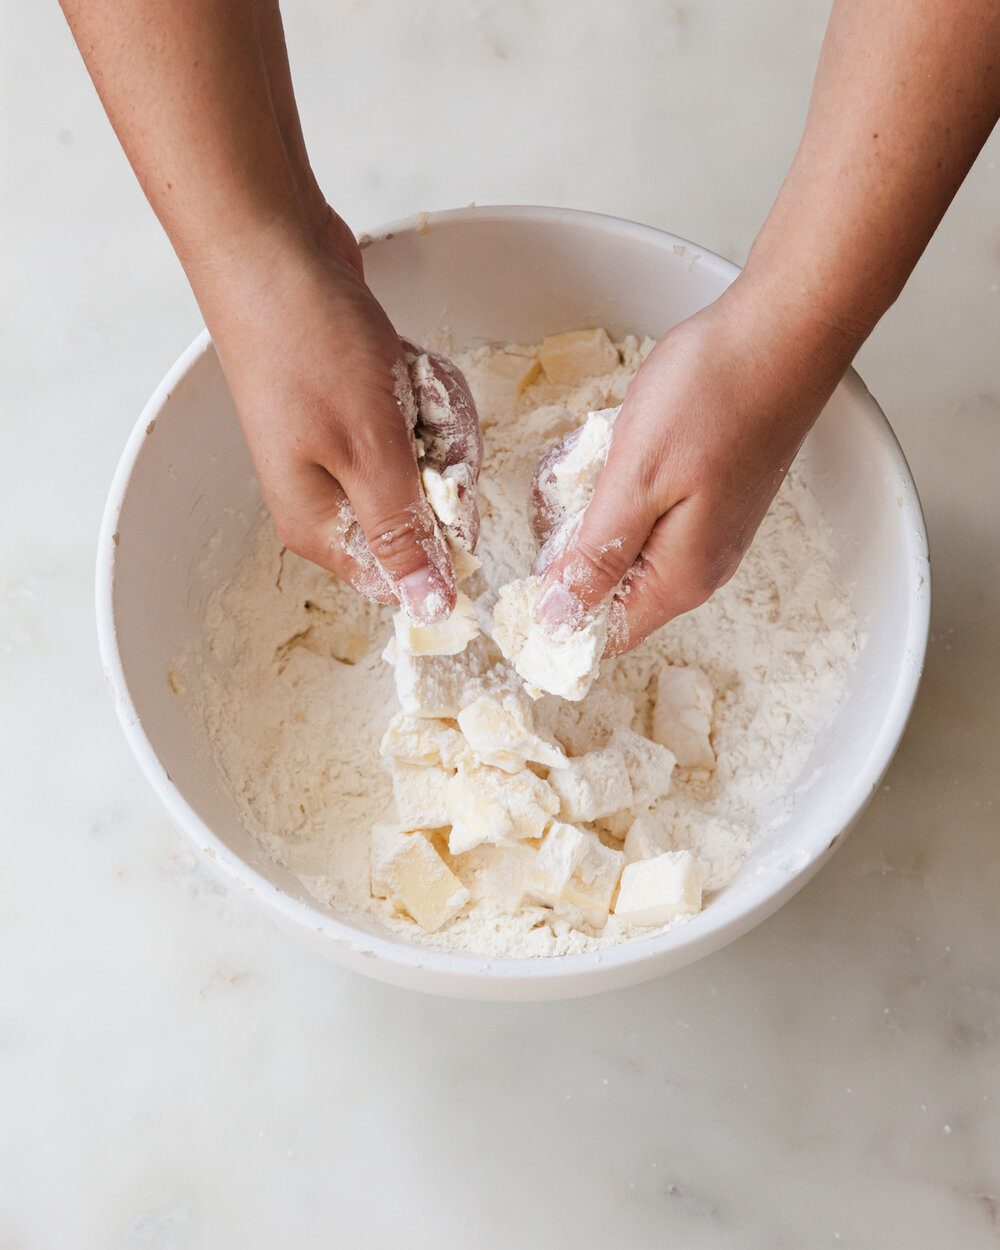 Cut the cold butter into the flour mixture by rubbing pieces between your thumbs and fingers.